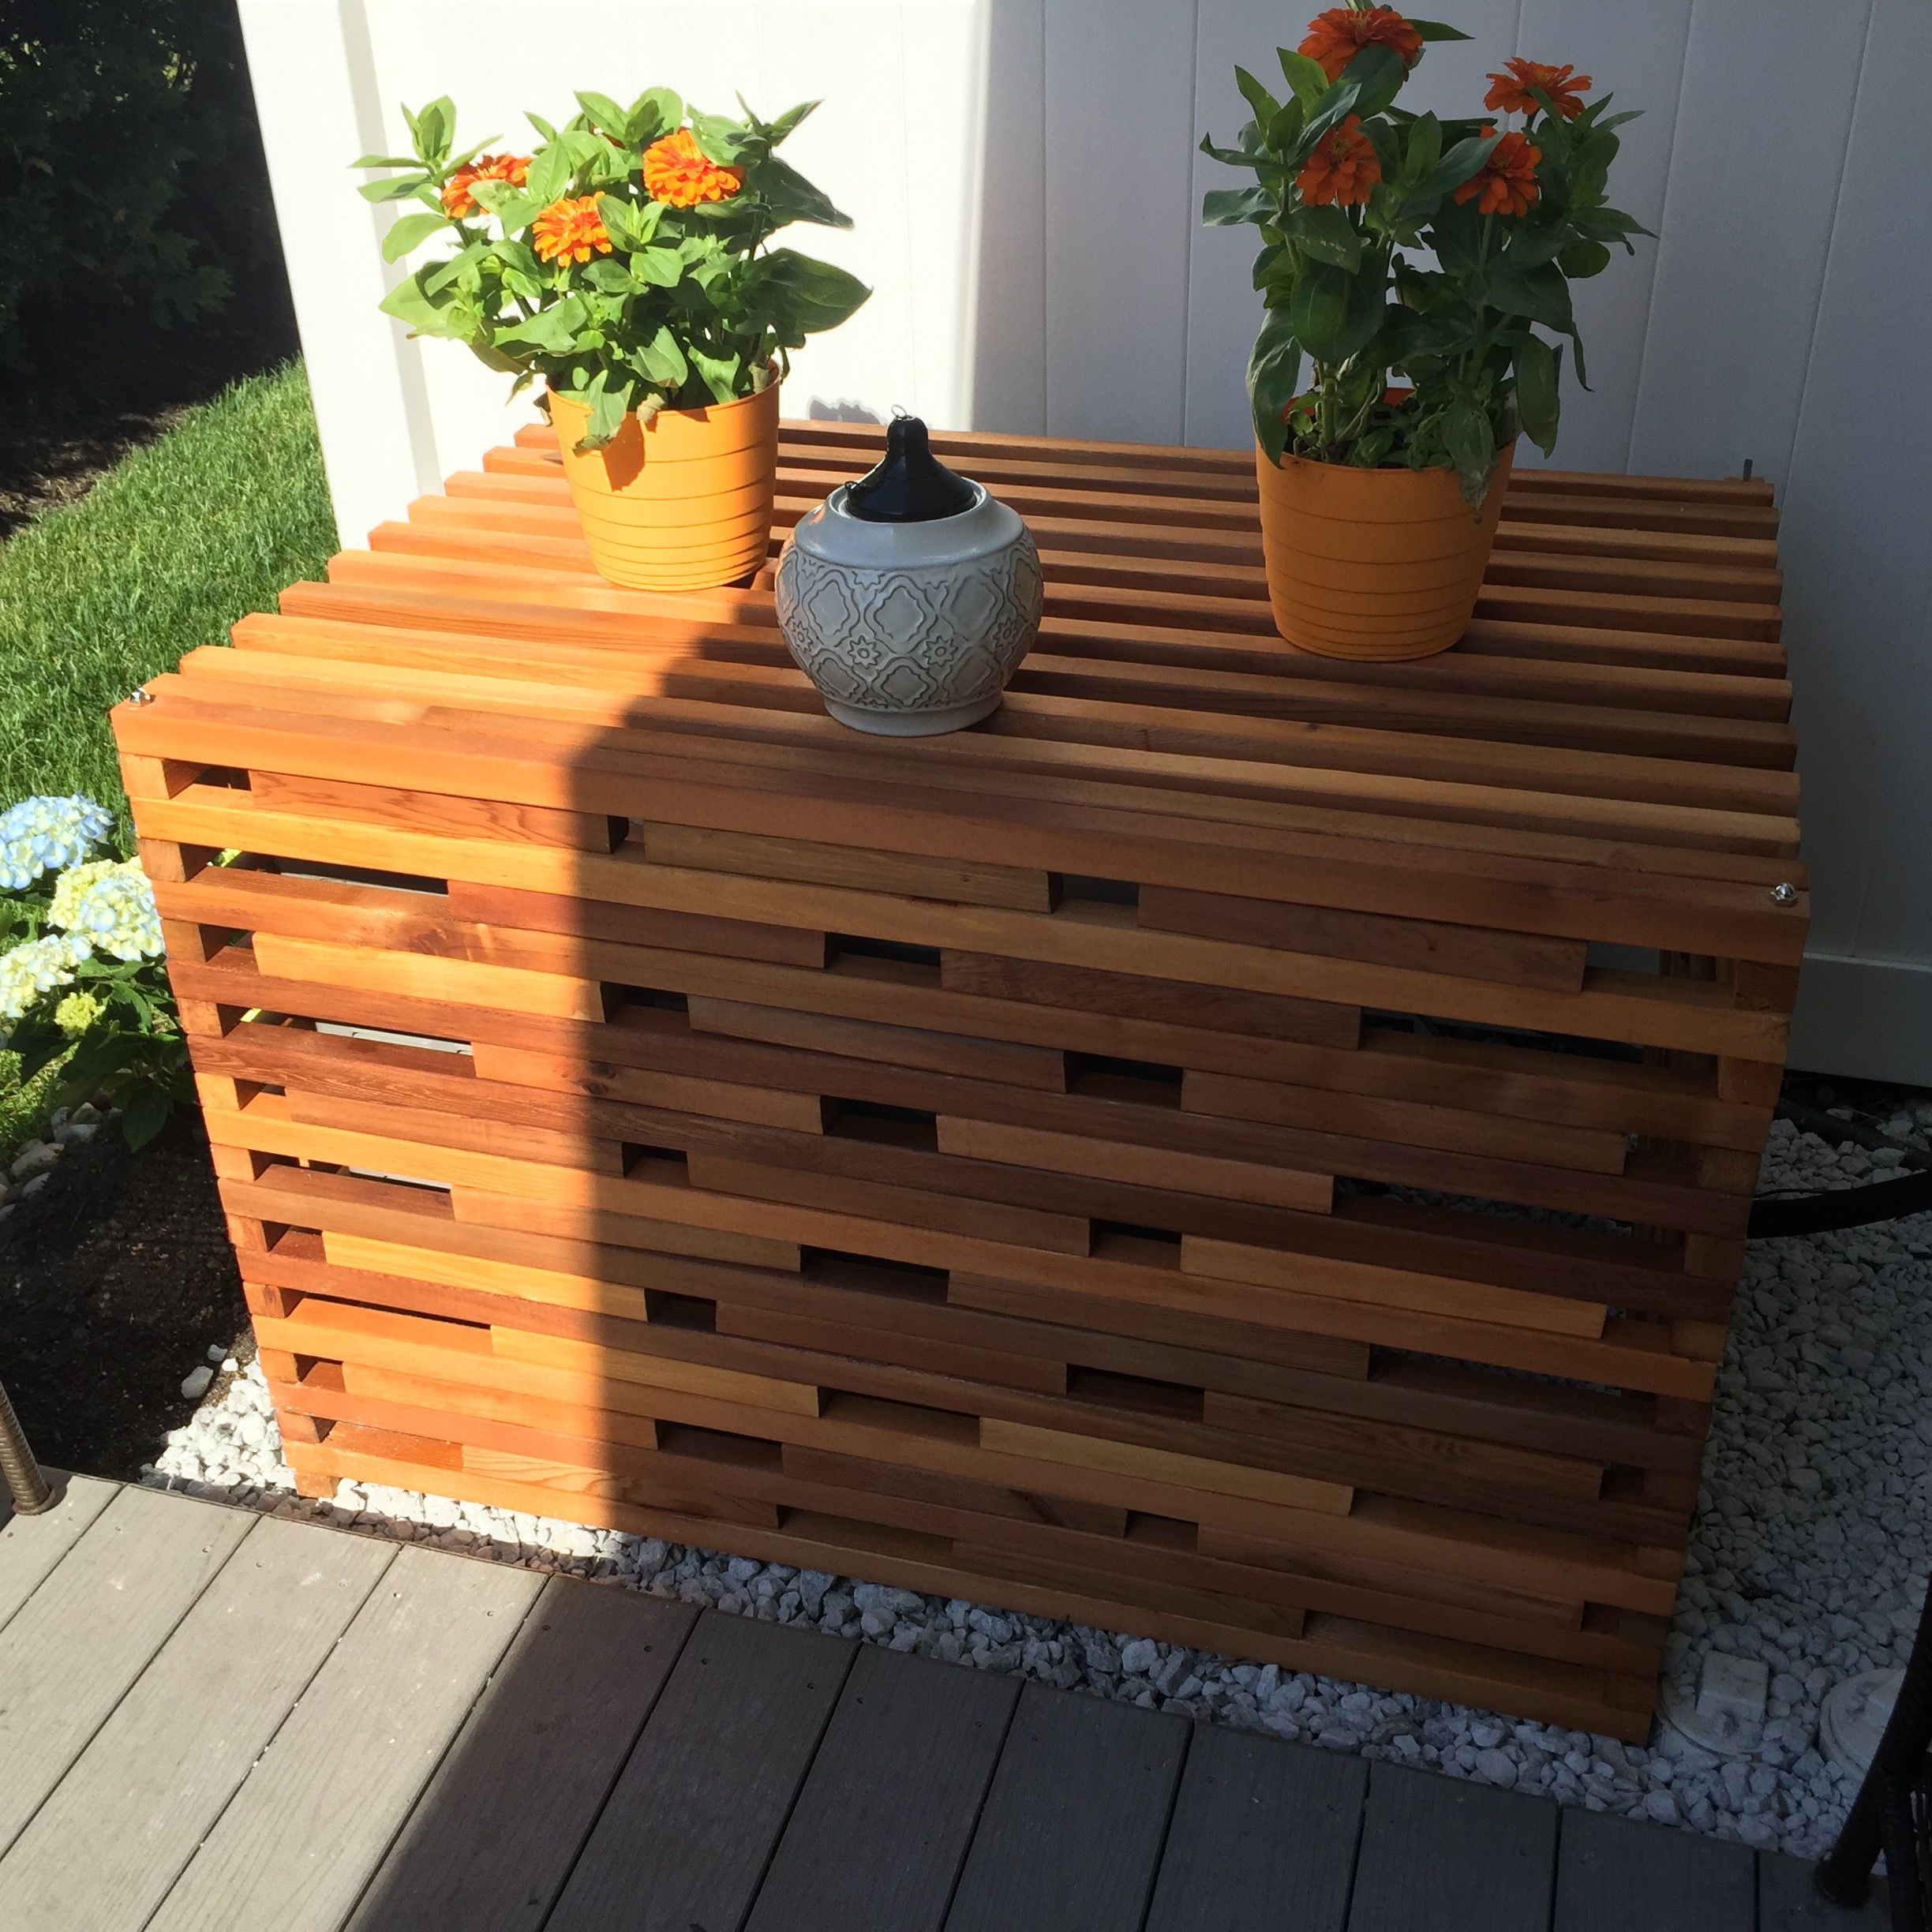 Cedar air conditioner cover | Decks | Pinterest | Air conditioner ...